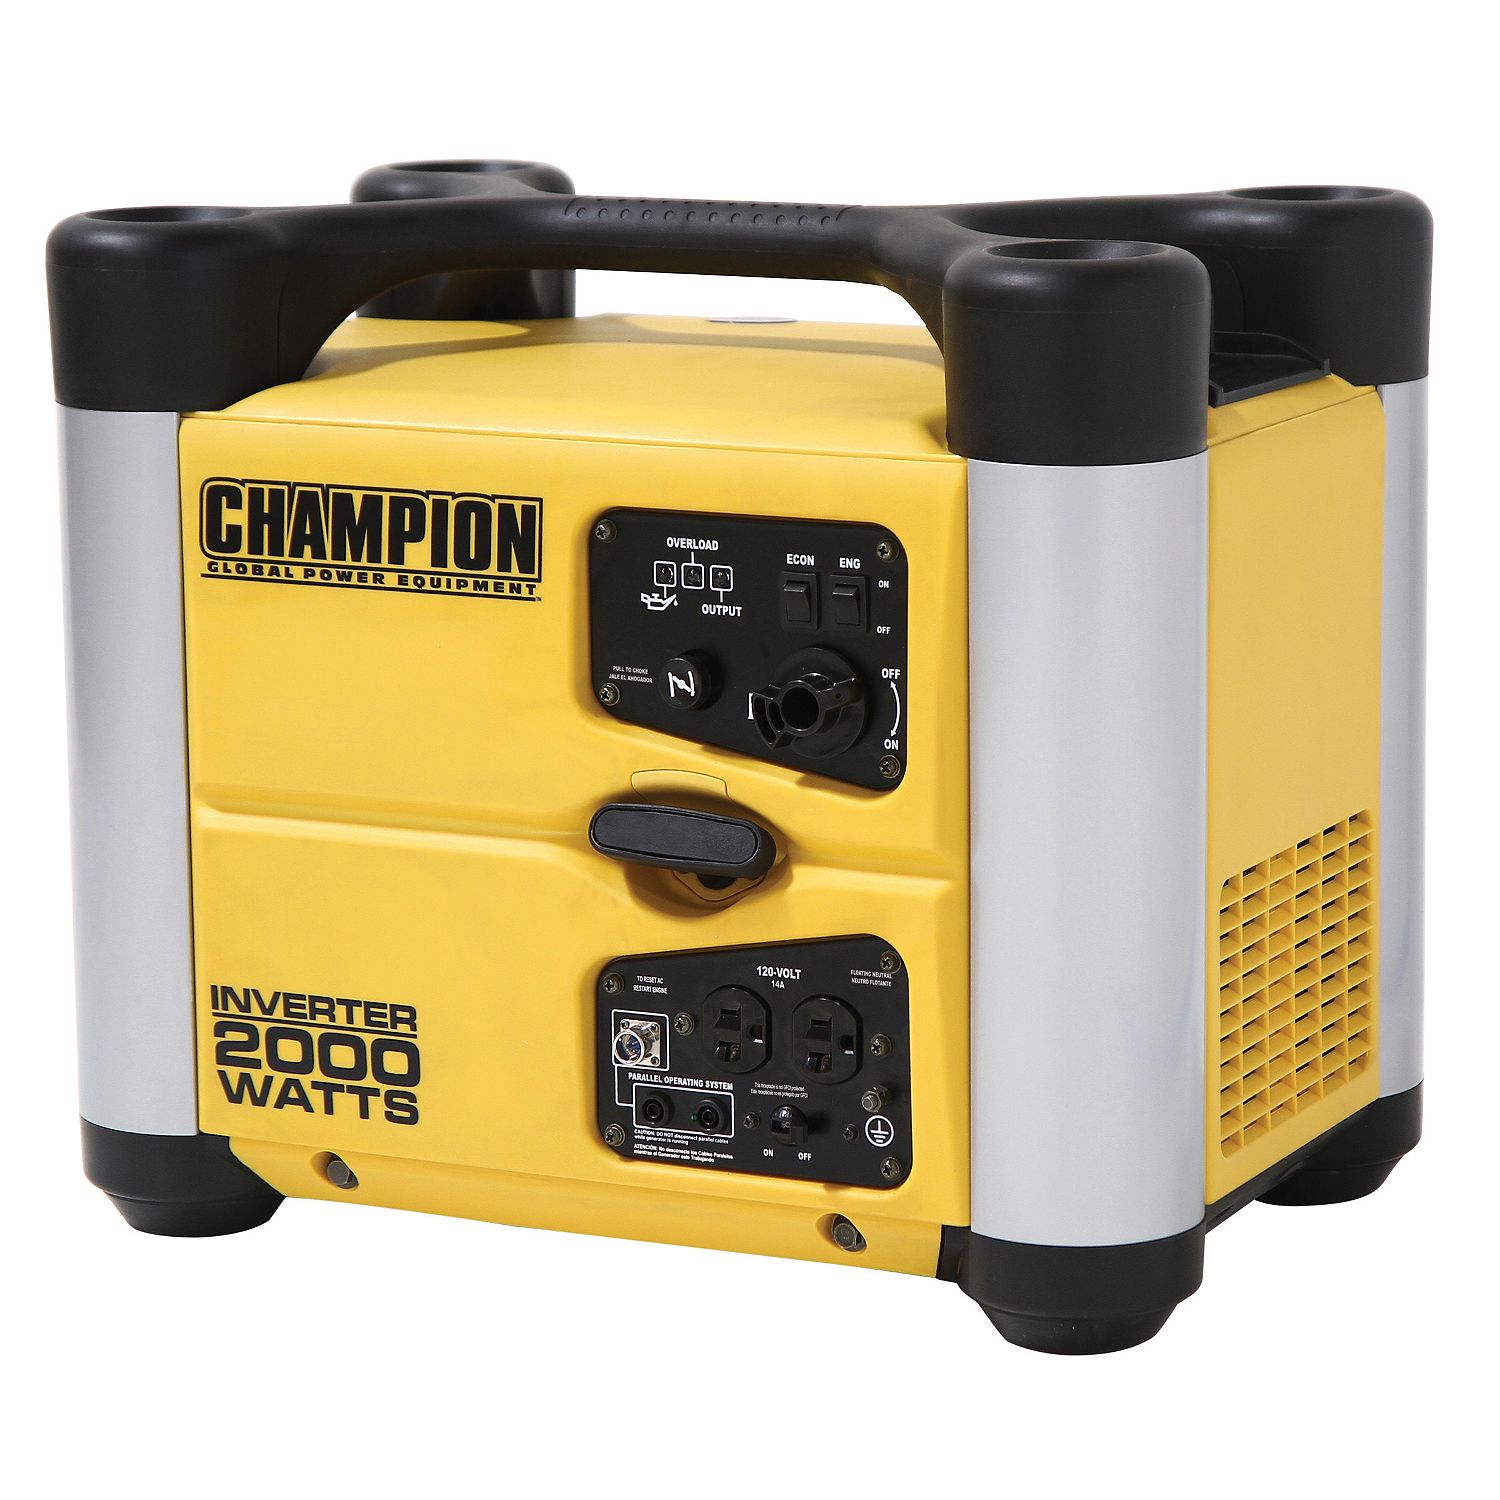 Yamaha Generators At Costco : Polaris and champion portable generators being added to